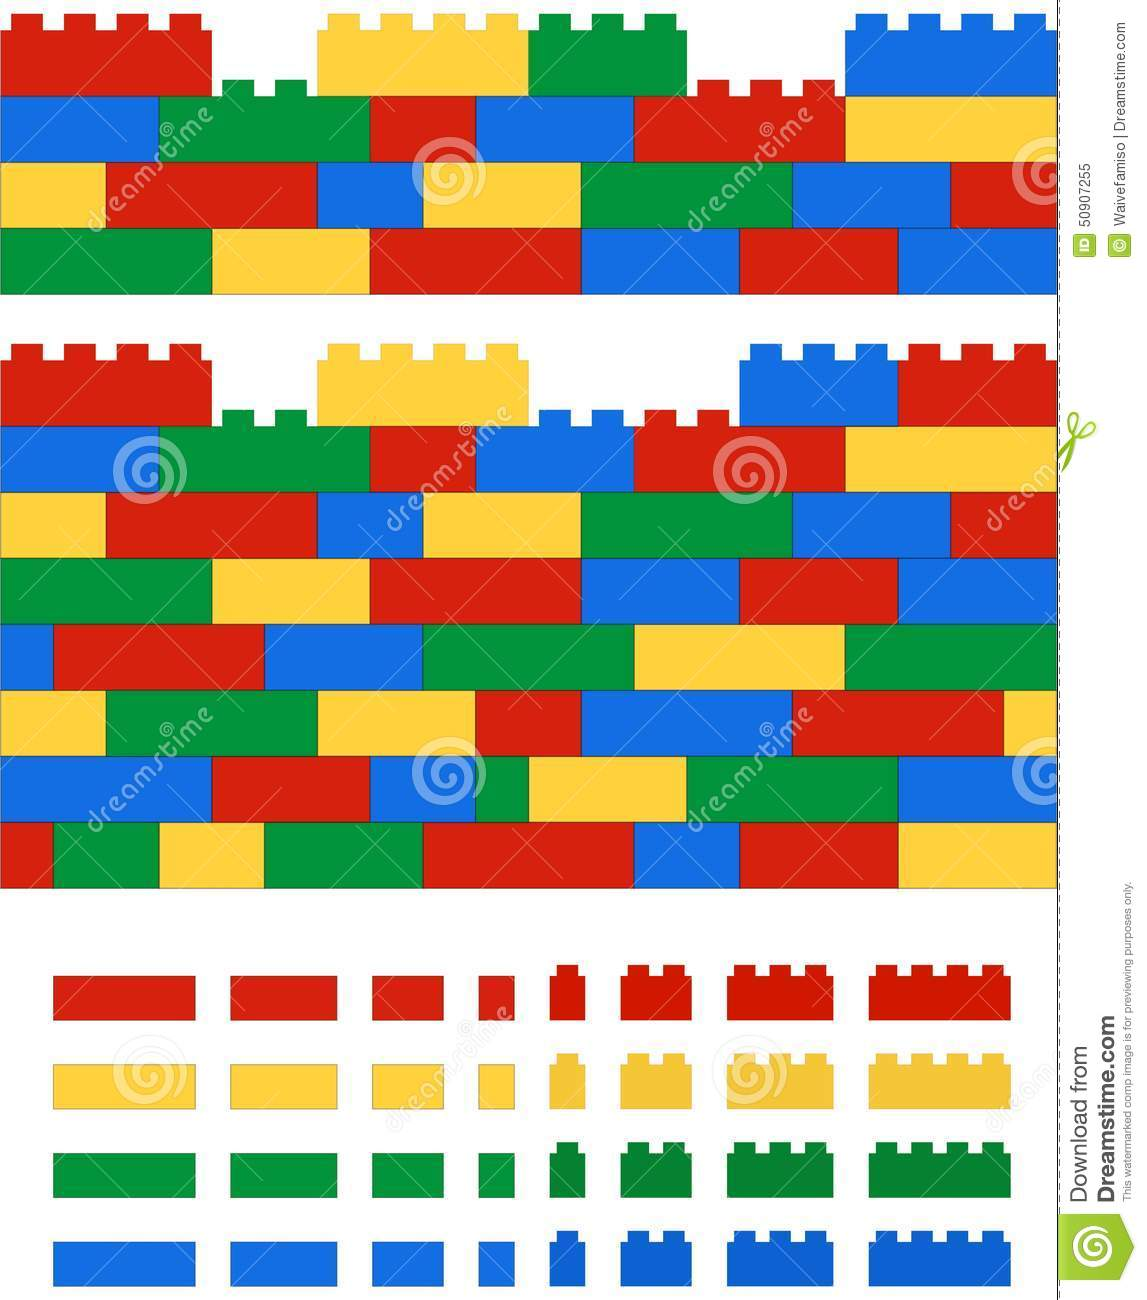 lego brick side view clipart - photo #19